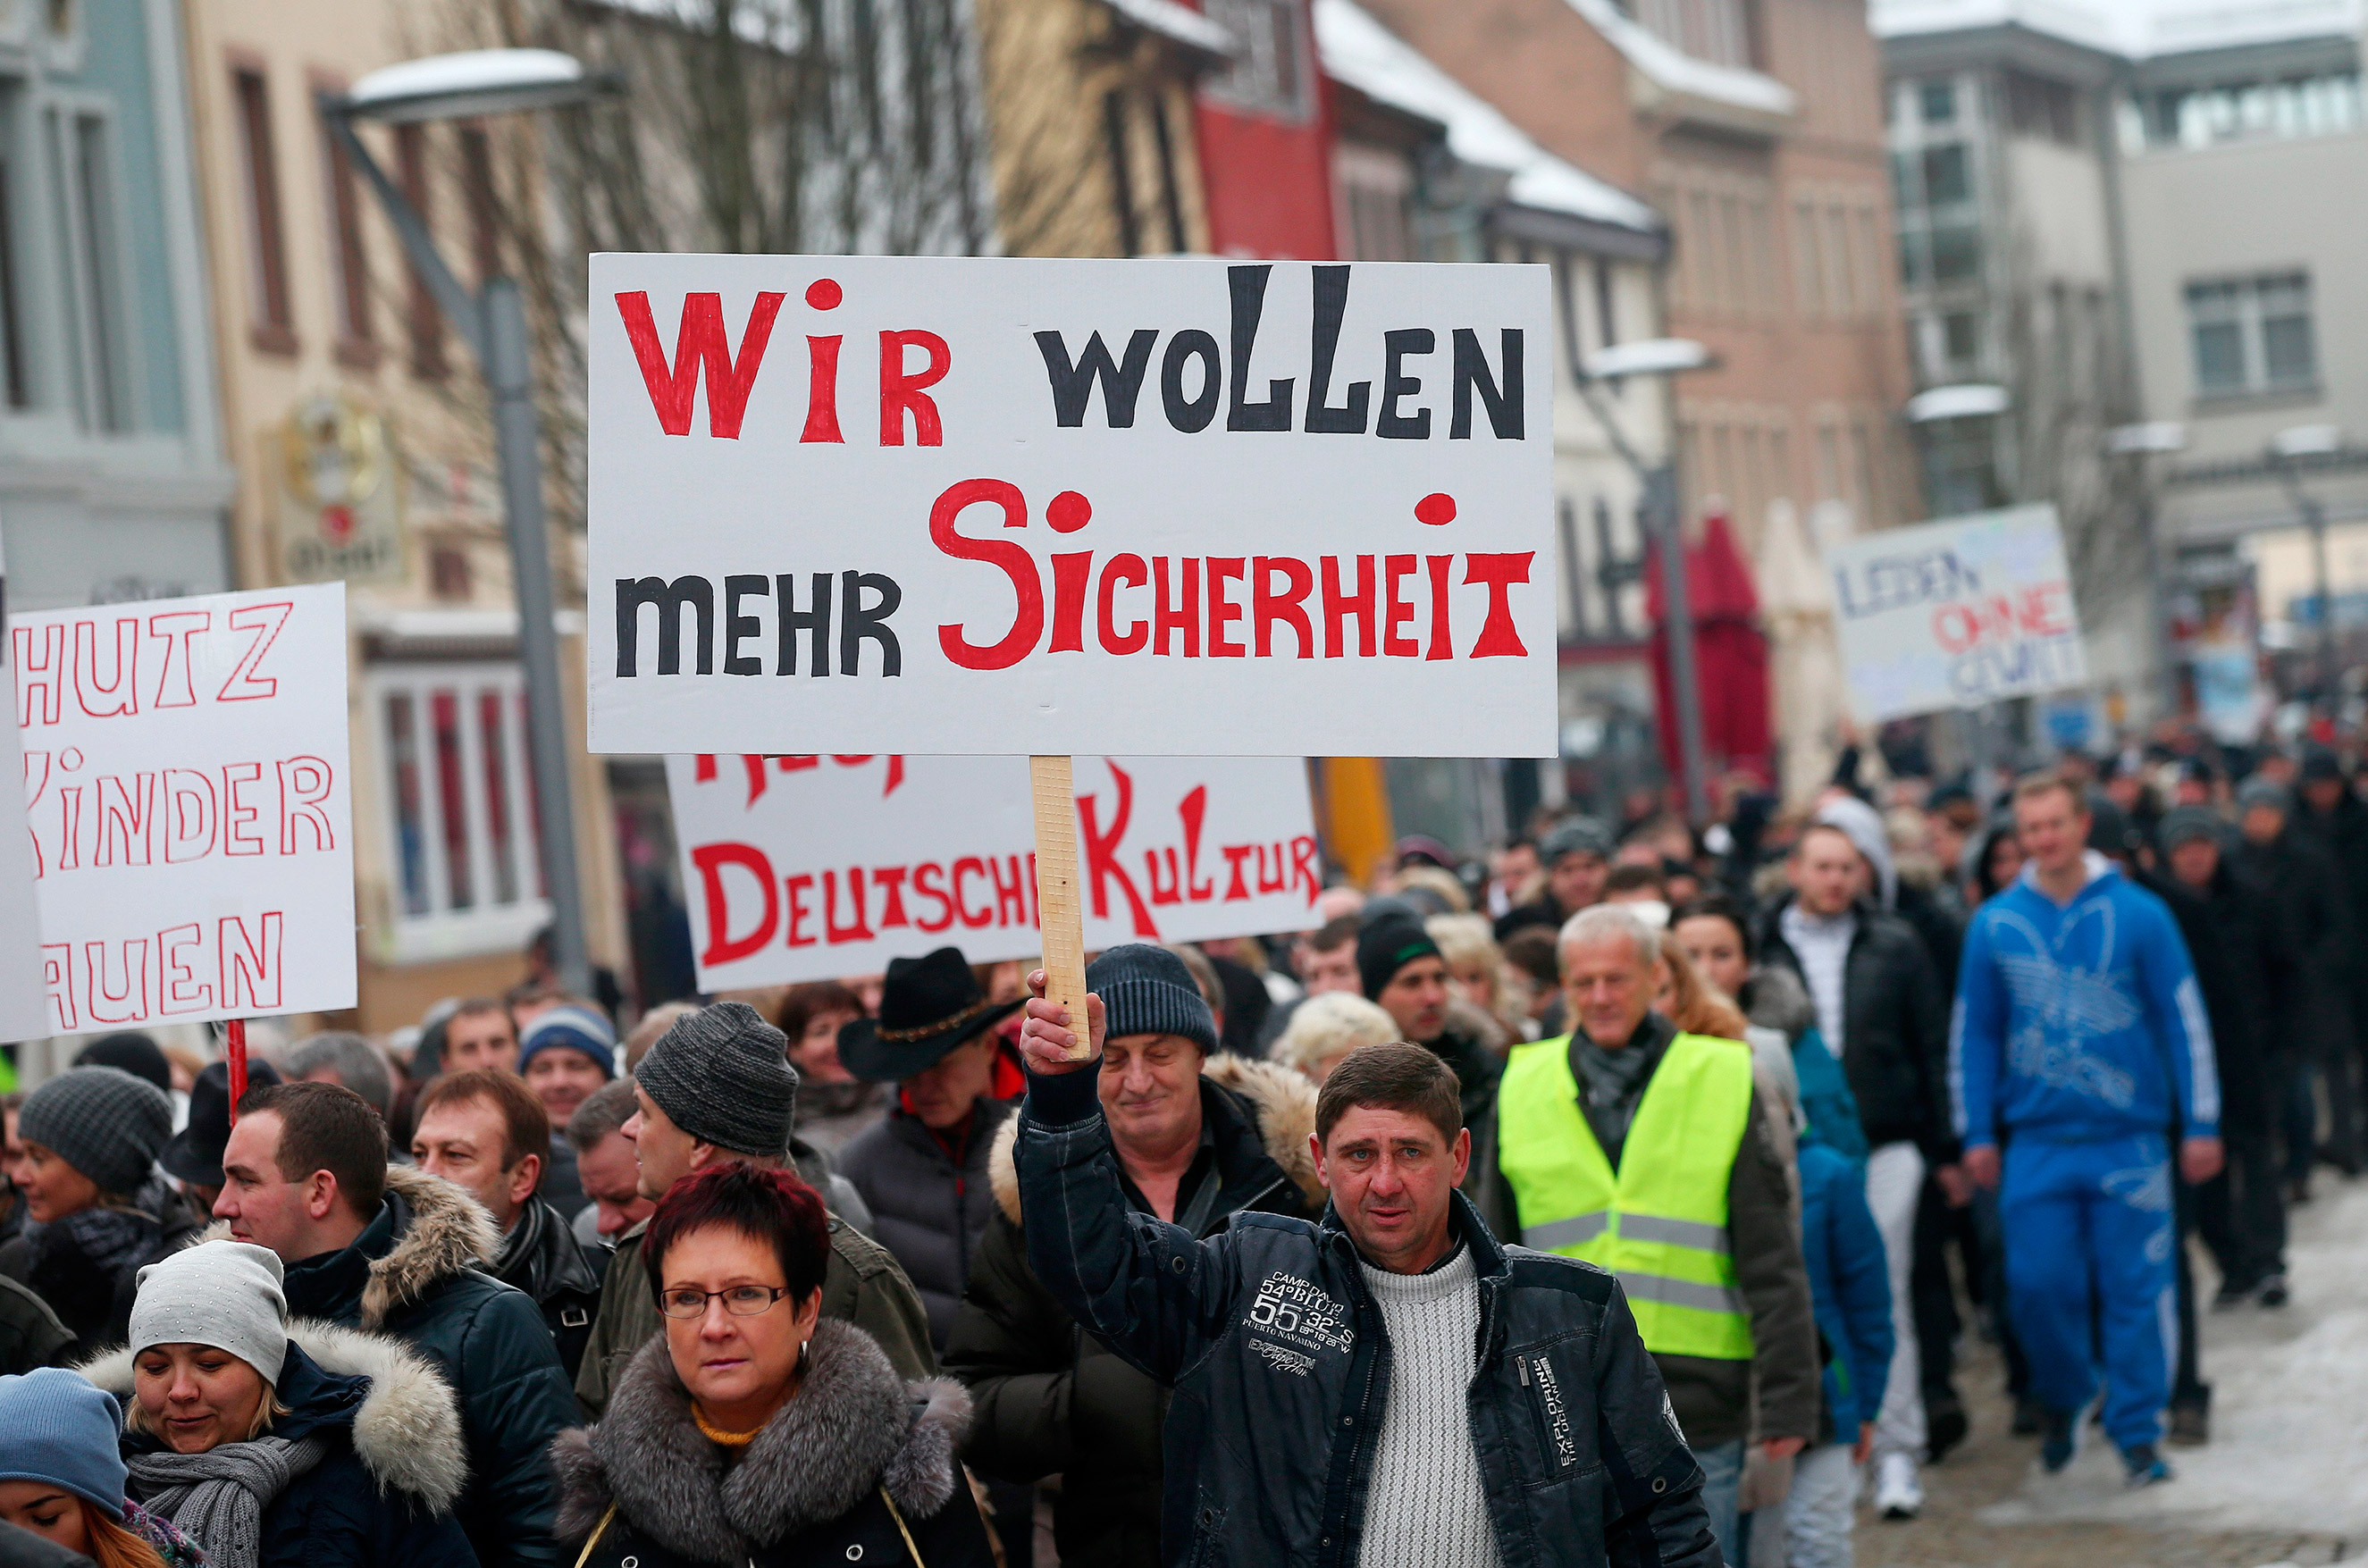 Hundreds of Russlanddeutsche, or ethnic Germans who had formerly lived in Russia, demonstrate with signs reading  we want more security  and against violence in Villingen-Schwenningen, Germany, Jan. 24, 2016. The demonstration took place in connection with the alleged rape of a 13-year-old girl by a refugee, which the police say did not happen.